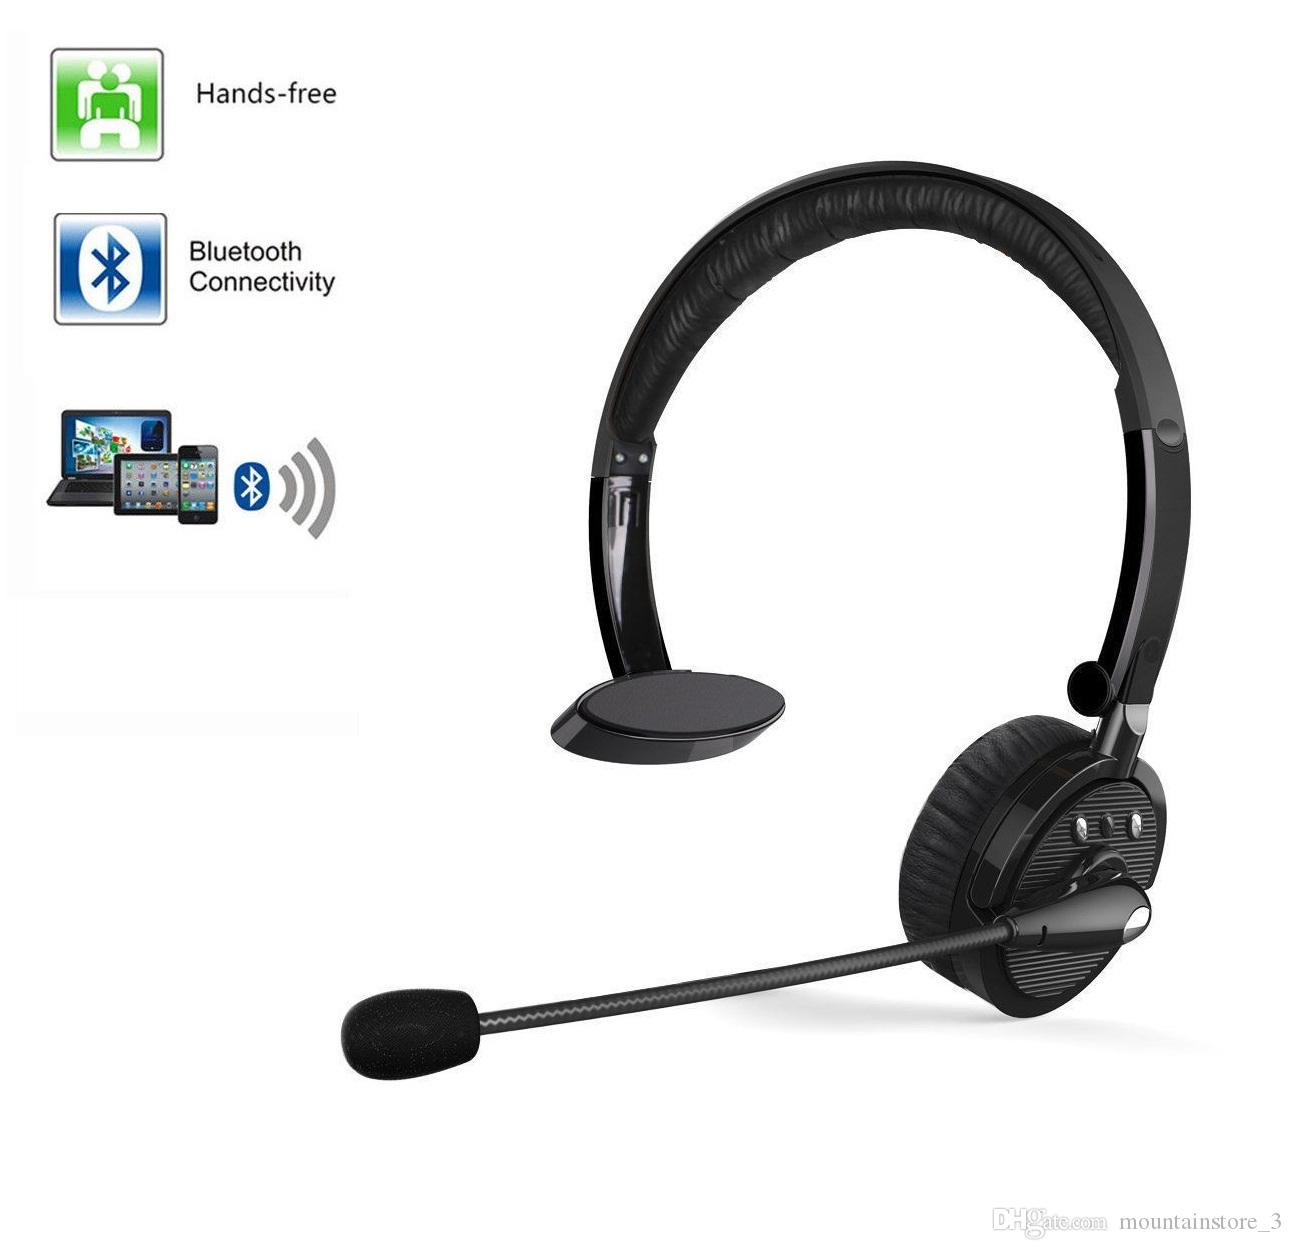 For Truck Driver Noise Cancelling Wireless Headphones Boom Mic Bluetooth Headset For Iphone Samsung Ps3 Android Mac Windows Retail Cell Phone Headsets Best Cell Phone Headset From Mountainstore 3 15 96 Dhgate Com